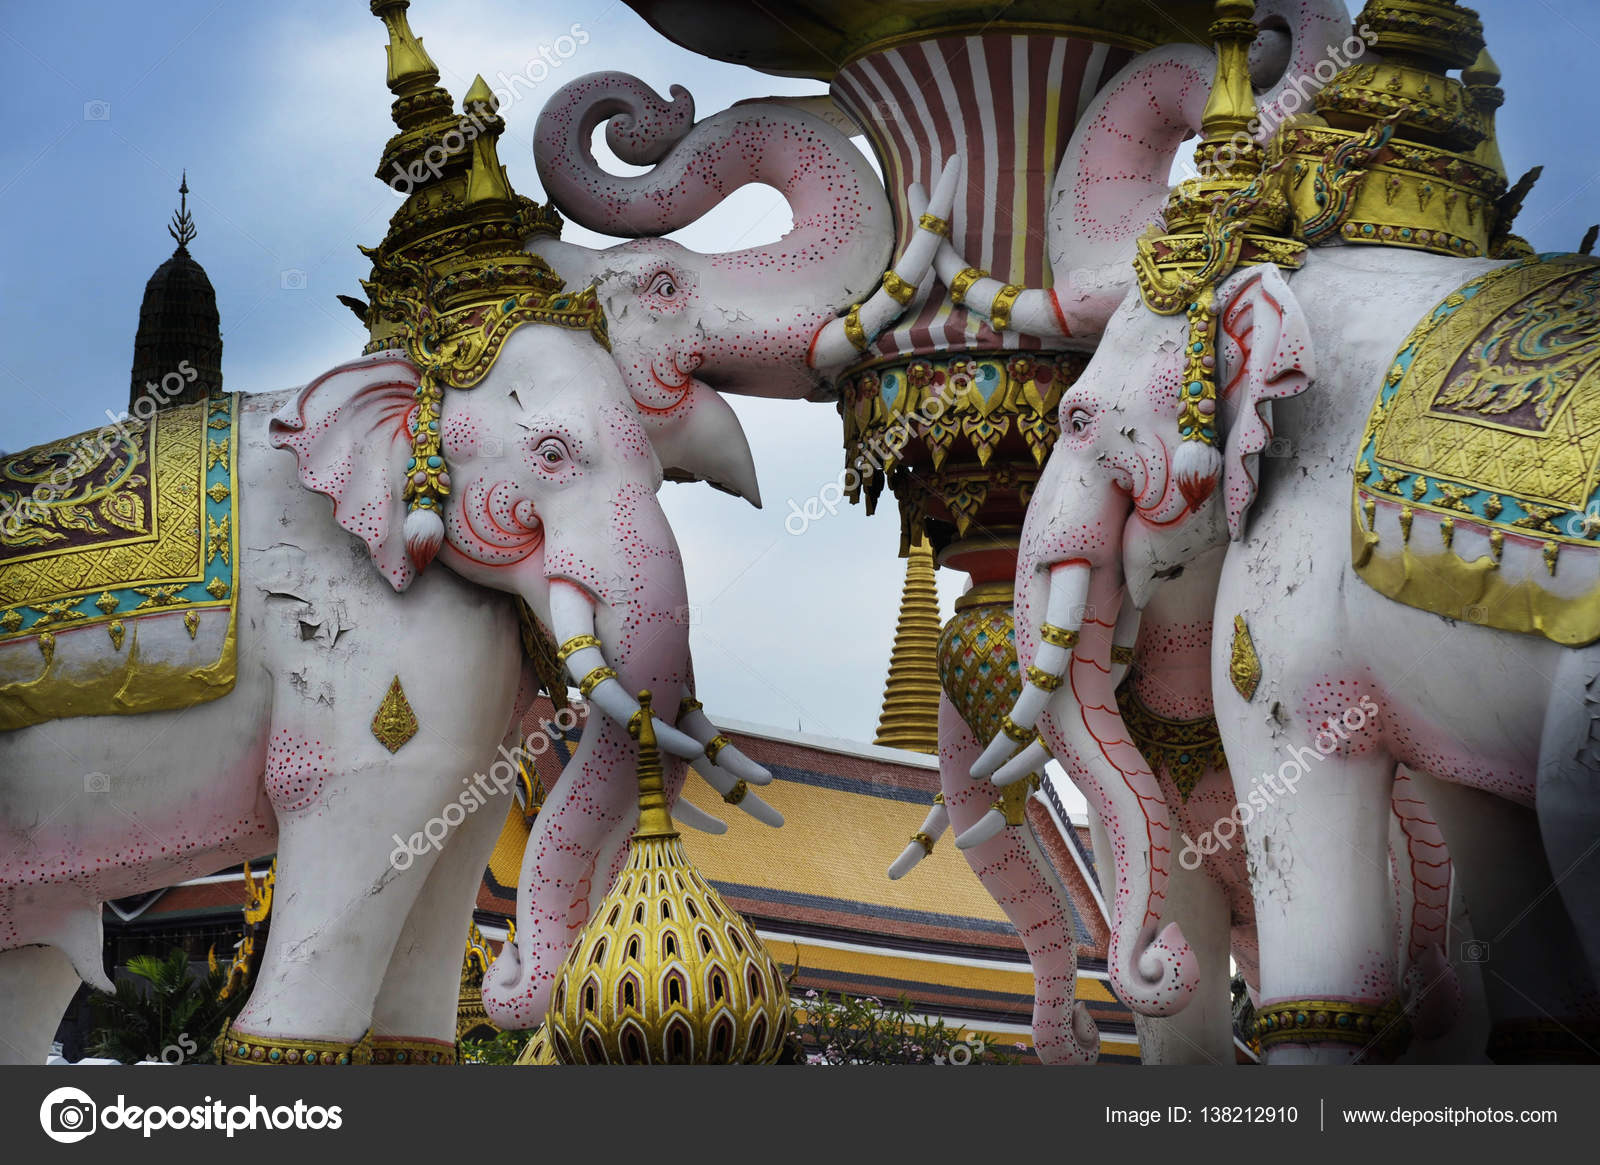 Pink Elephant Statue Next To Grand Palace In Bangkok Thailand As